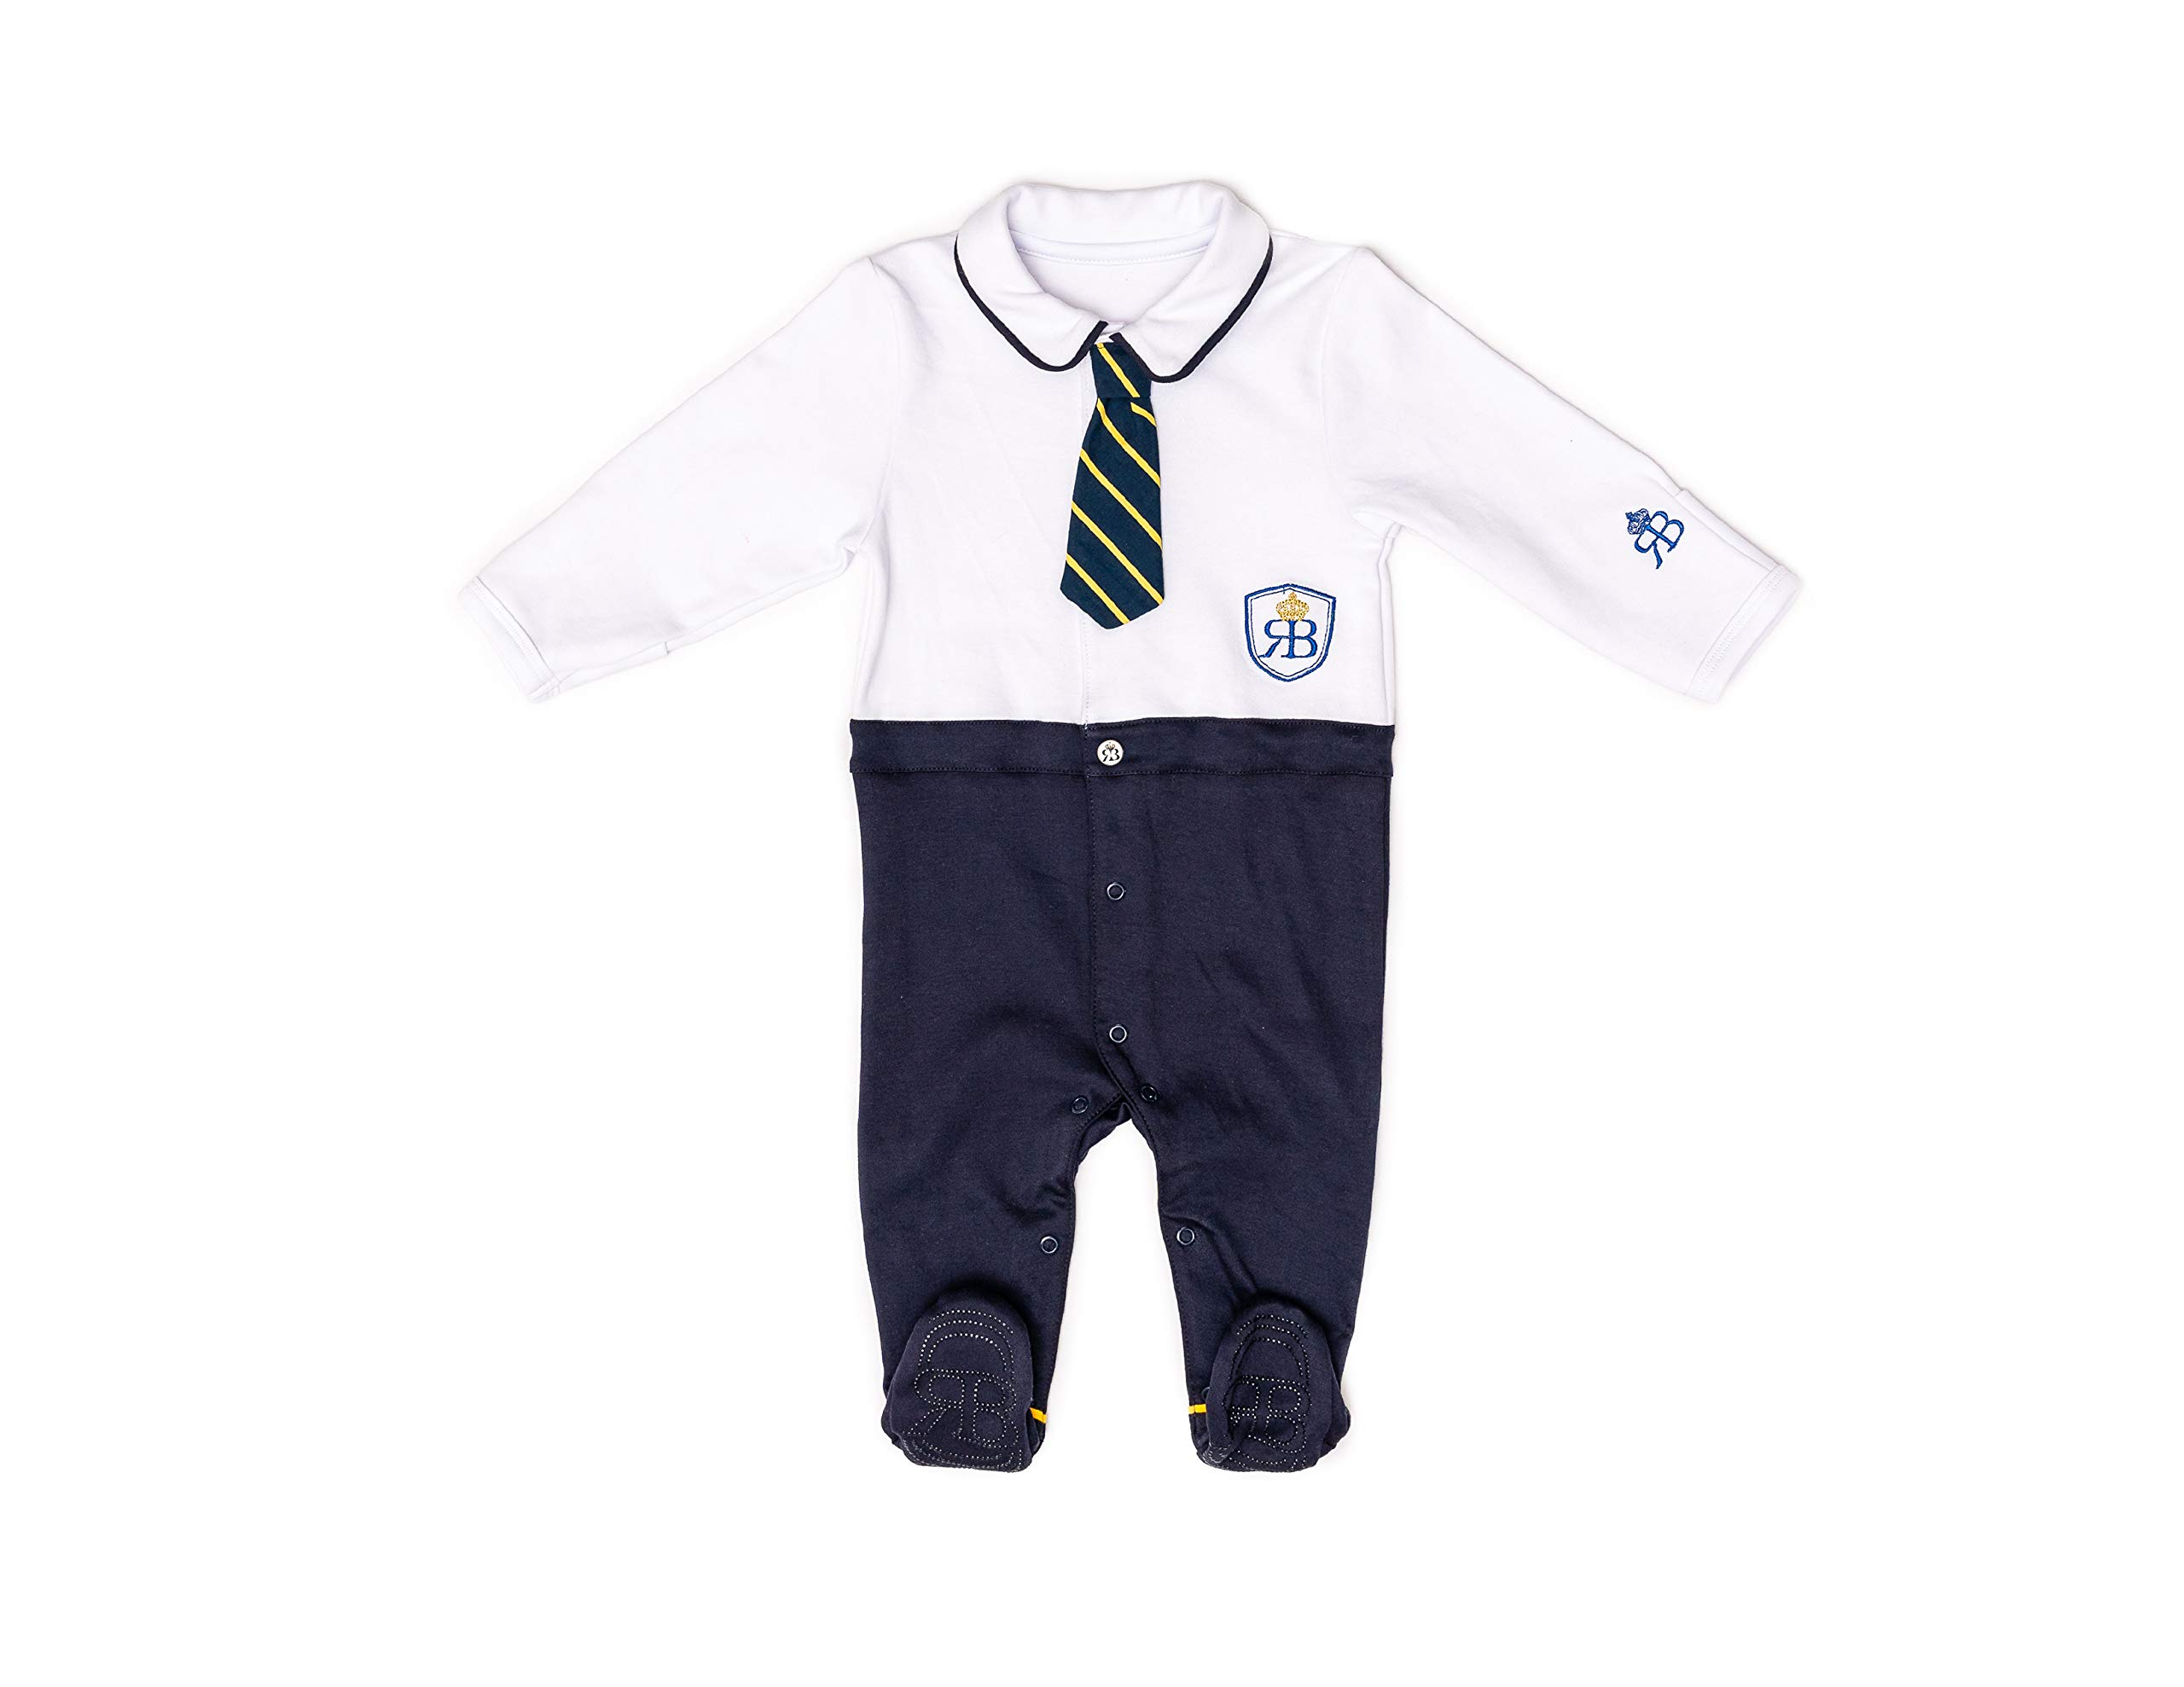 RB Royal Baby Organic Cotton Gloved-Sleeve Footed Overall, Footie (Little Man) White Navy